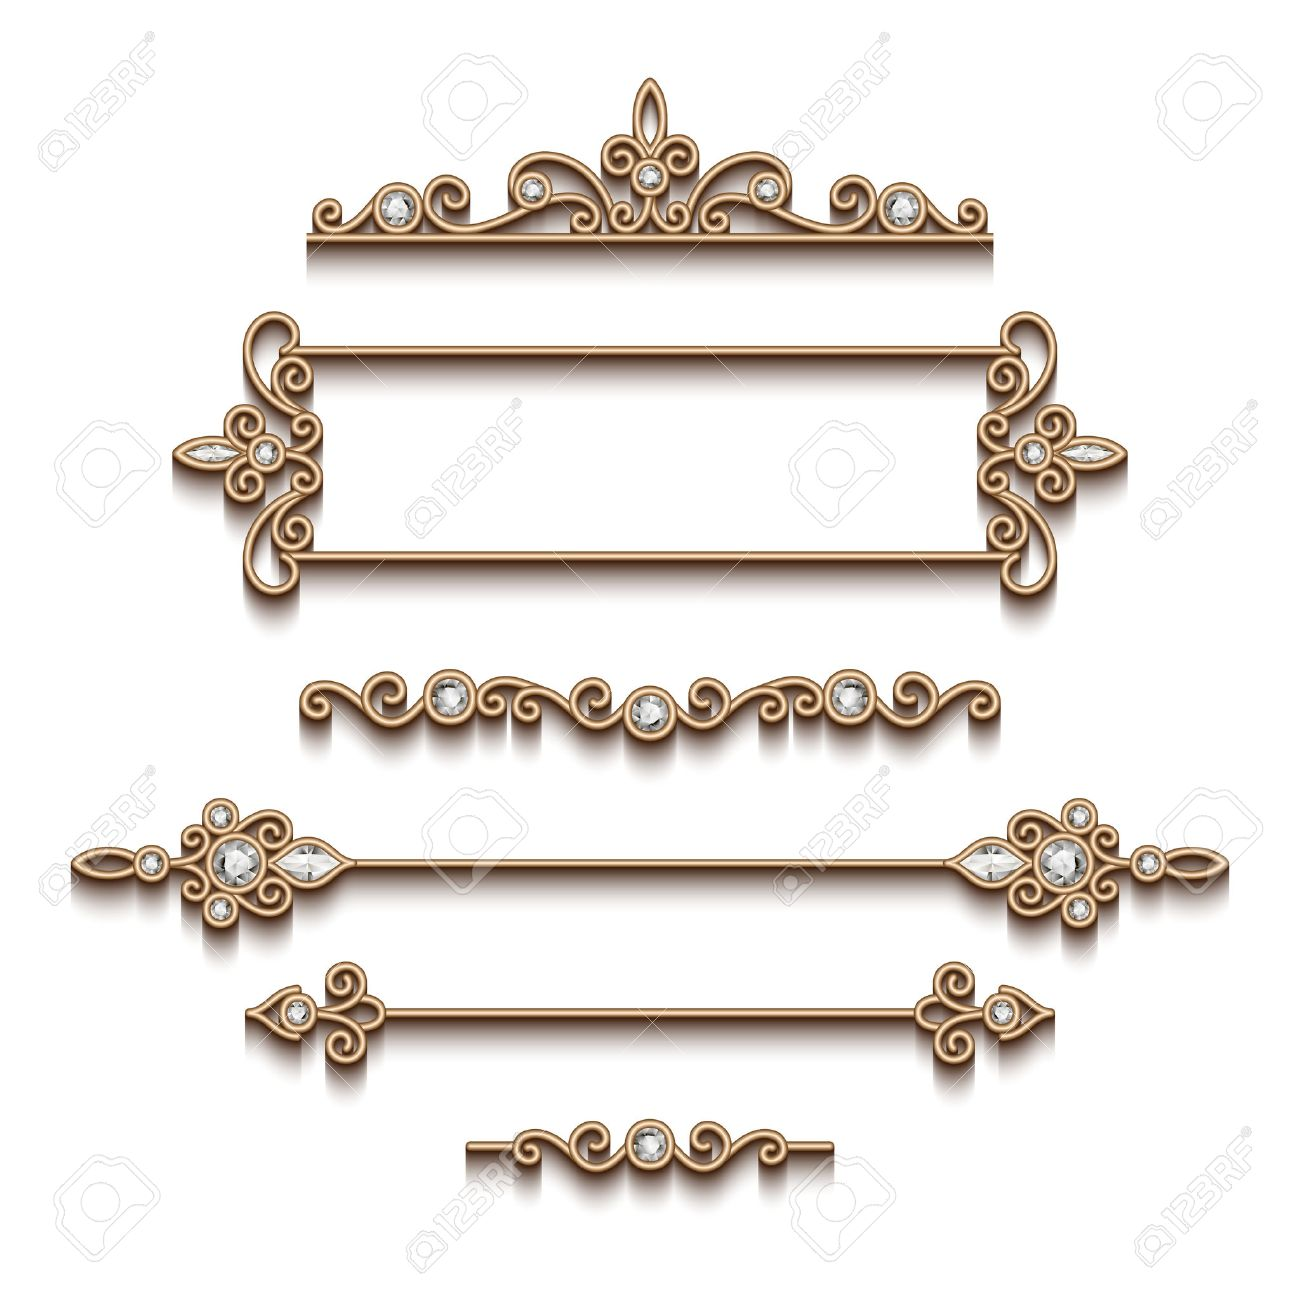 Vintage Gold Jewelry Vignettes And Dividers Set Of Decorative